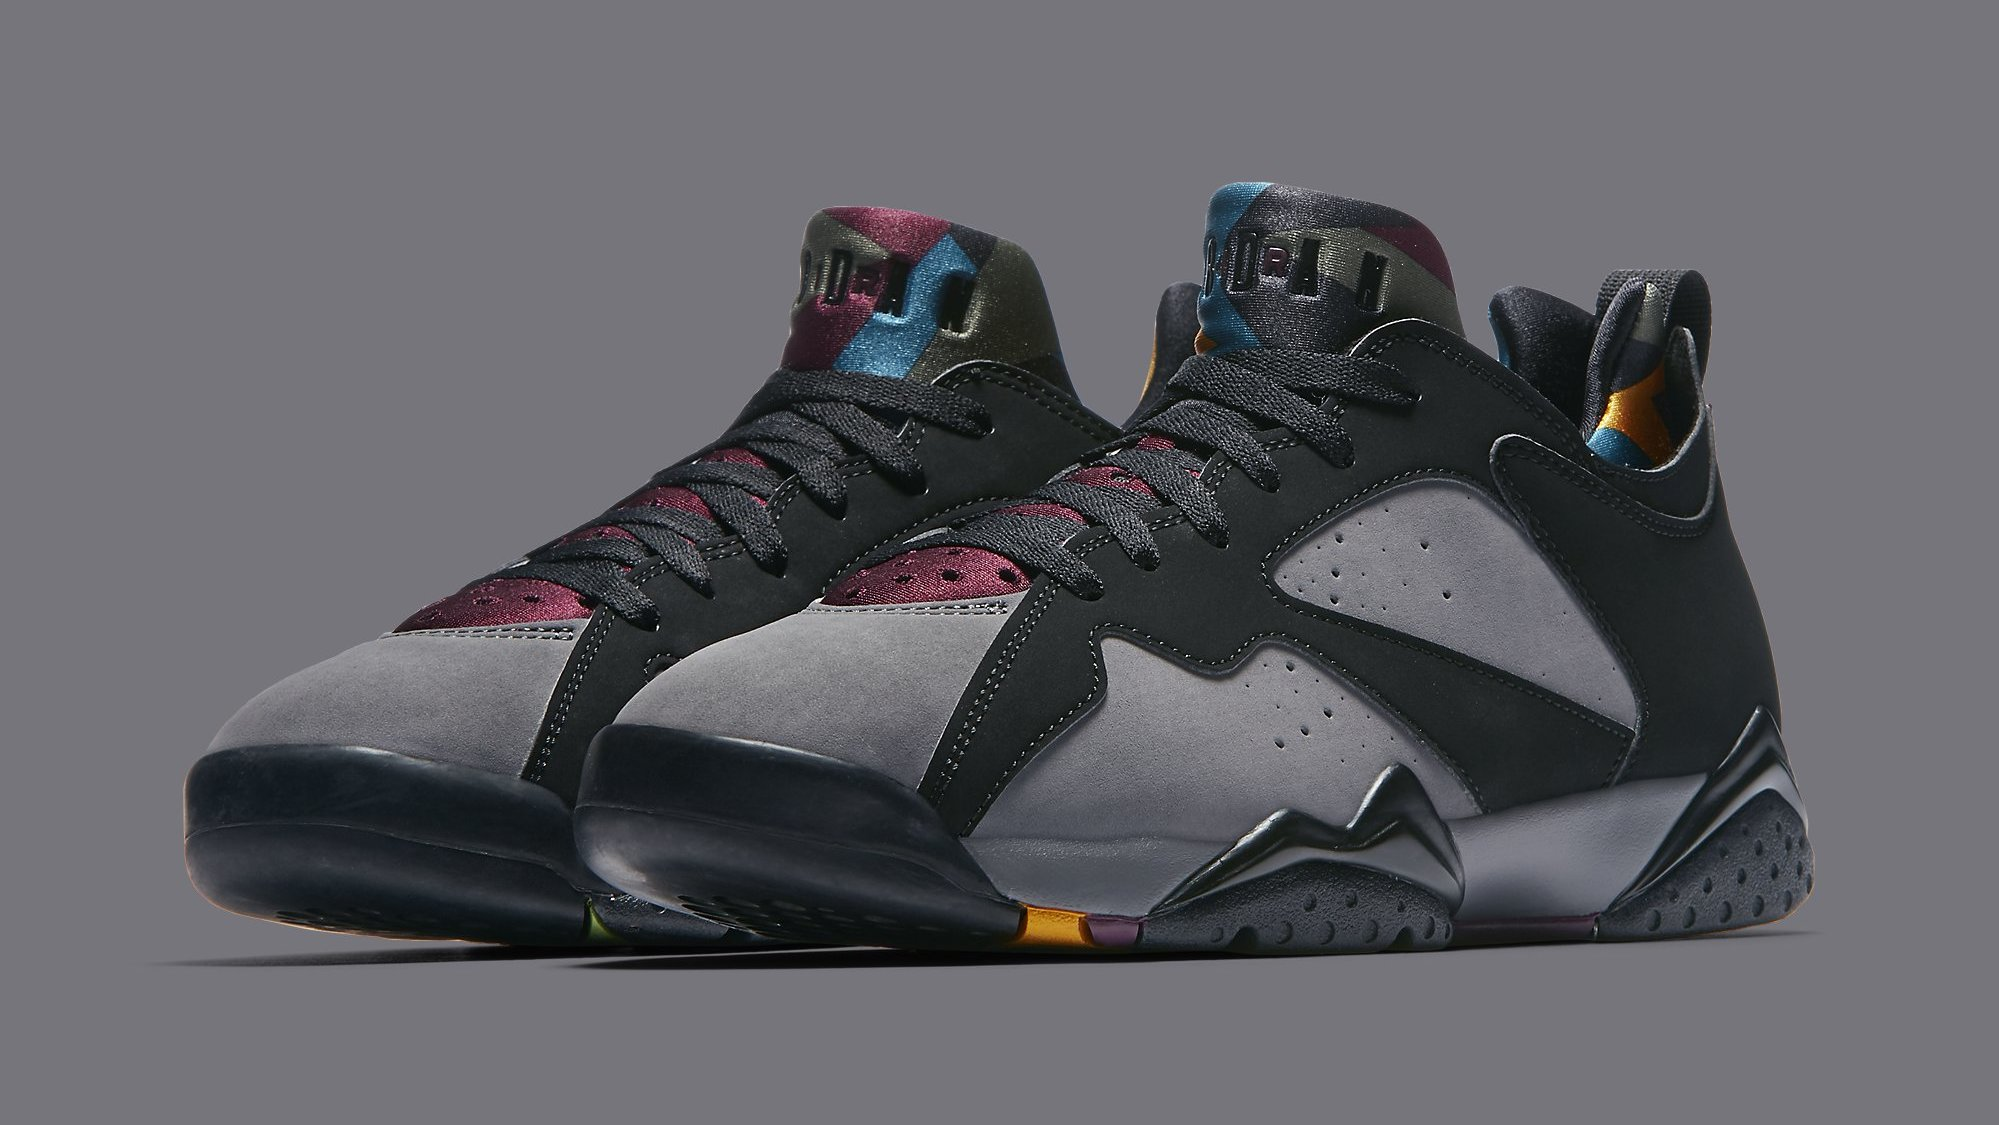 the best attitude 726d0 a4be7 First spotted in 2006, the Air Jordan 7 Low is finally releasing in three  NRG colorways for Summer 2018, including Bordeaux, Bright Concord and  Taxi.